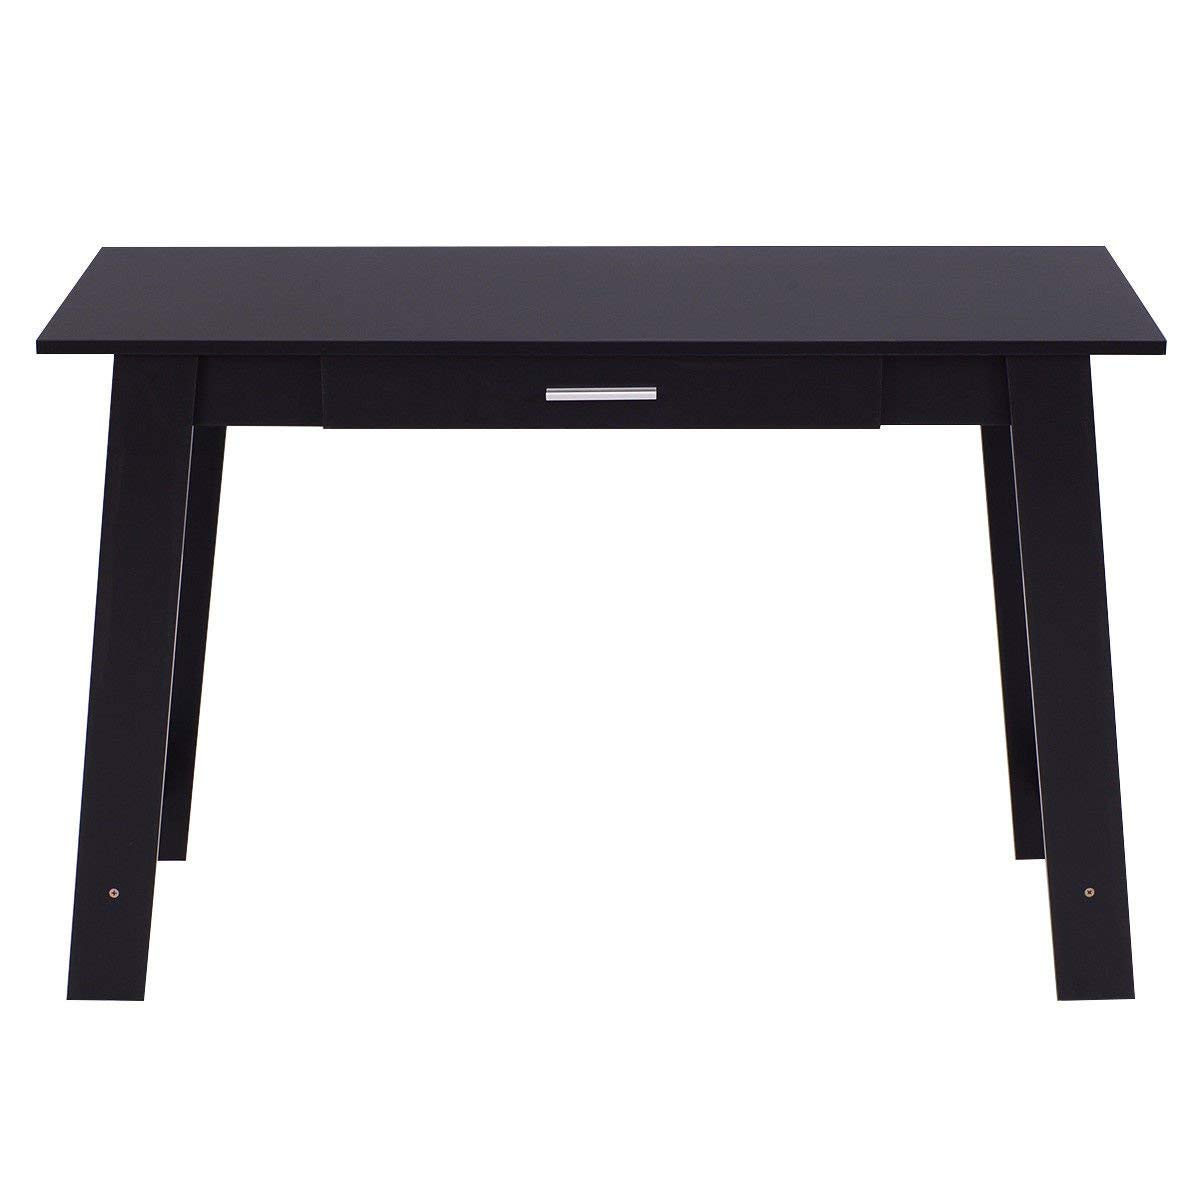 TANGKULA Computer Desk PC Laptop Table Home Office Modern Simple Study Work Station Writing Table W/Drawer